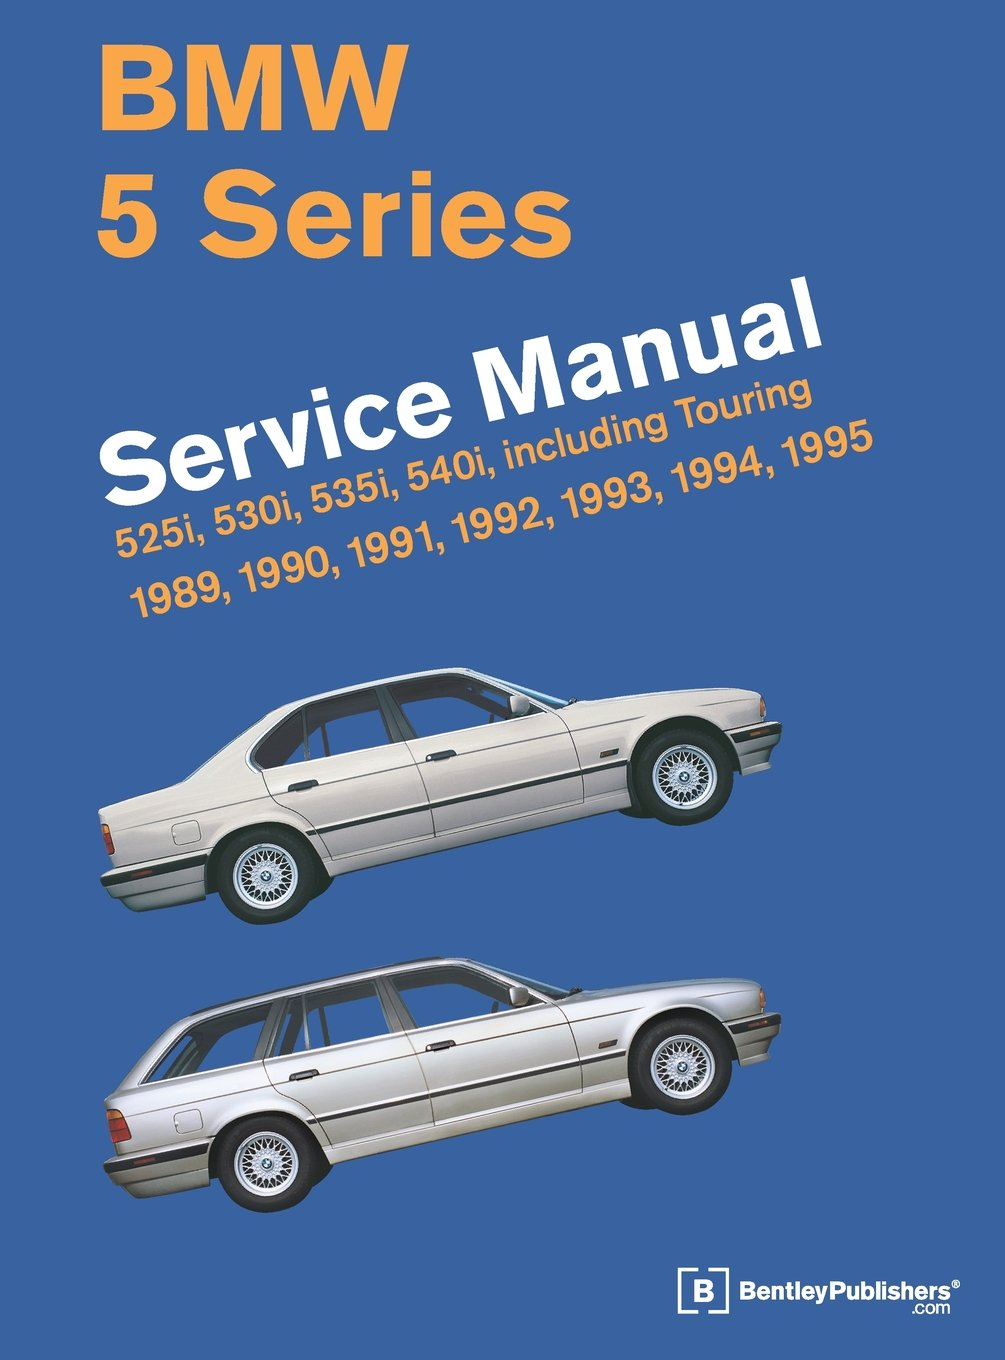 BMW 5 Series (E34) Service Manual: 1989, 1990, 1991, 1992, 1993, 1994,  1995: Bentley Publishers: 9780837616971: Amazon.com: Books